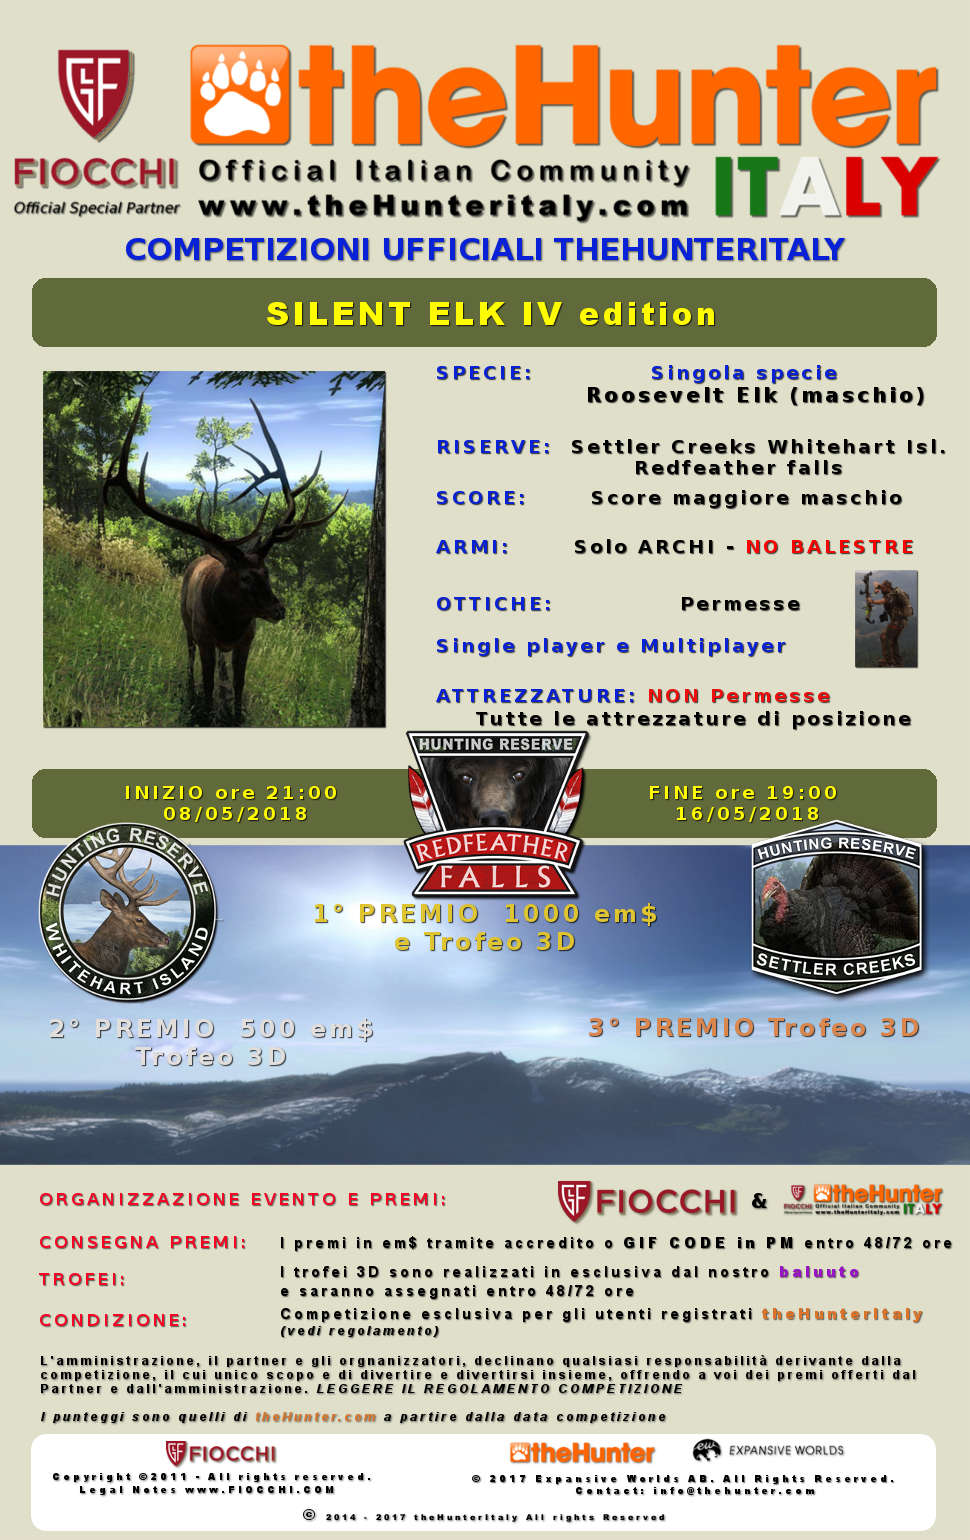 [CONCLUSA] Competizioni Ufficiali theHunterItaly: - Silent Elk IV edition - Roosevelt Elk Silent10